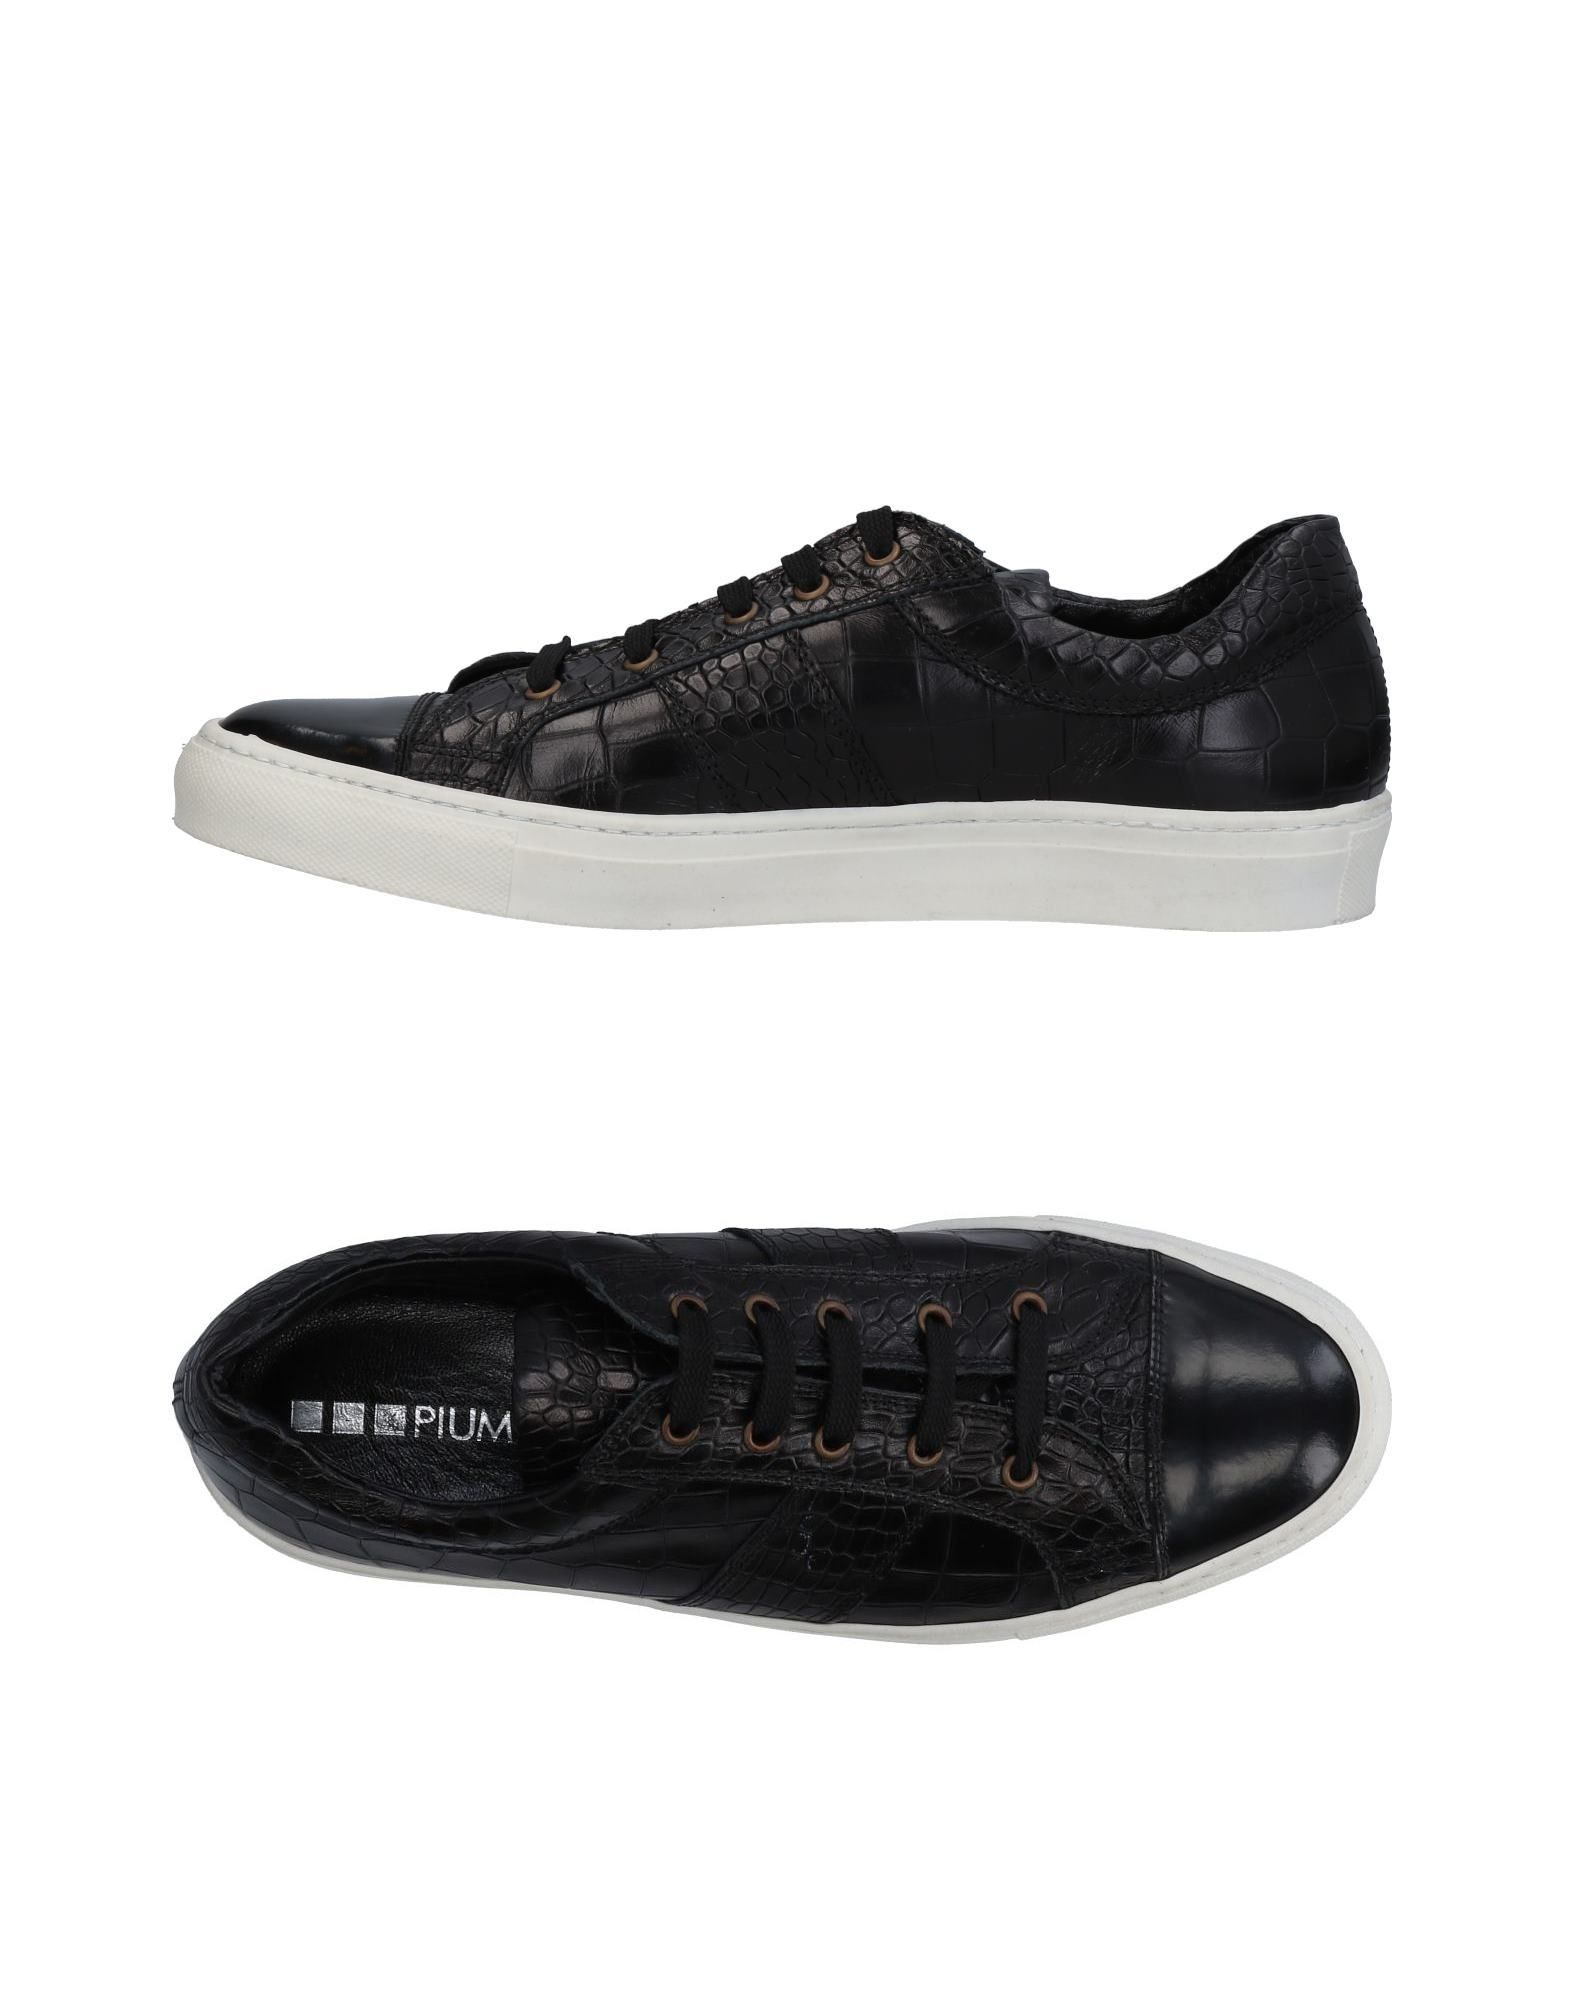 Sneakers Piumi Homme - Sneakers Piumi  Noir Chaussures casual sauvages